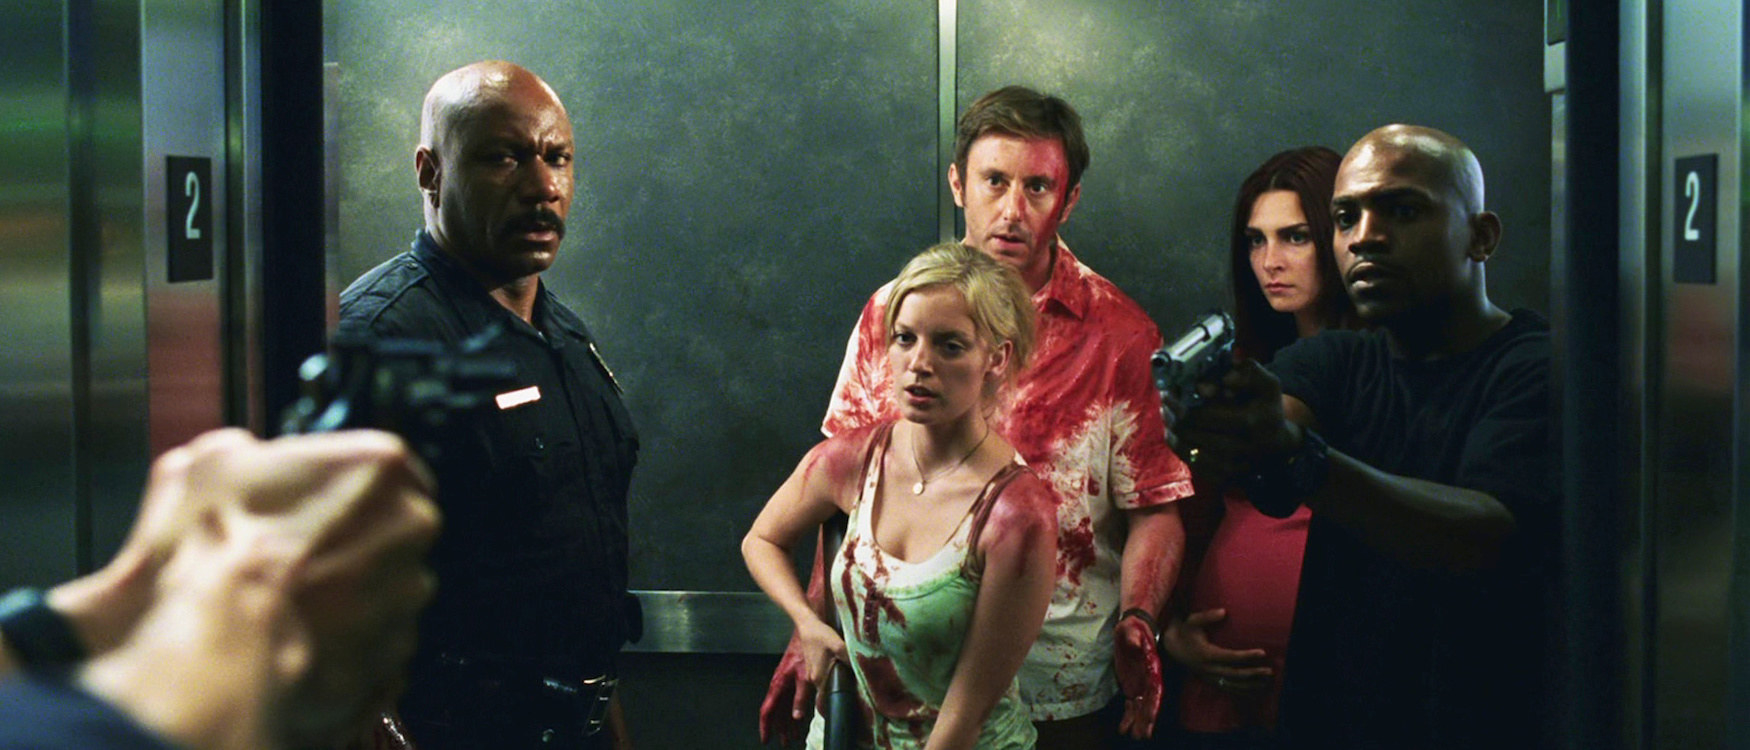 A group of bloodied survivors in an elevator, trying their best to escape the zombie apocalypse